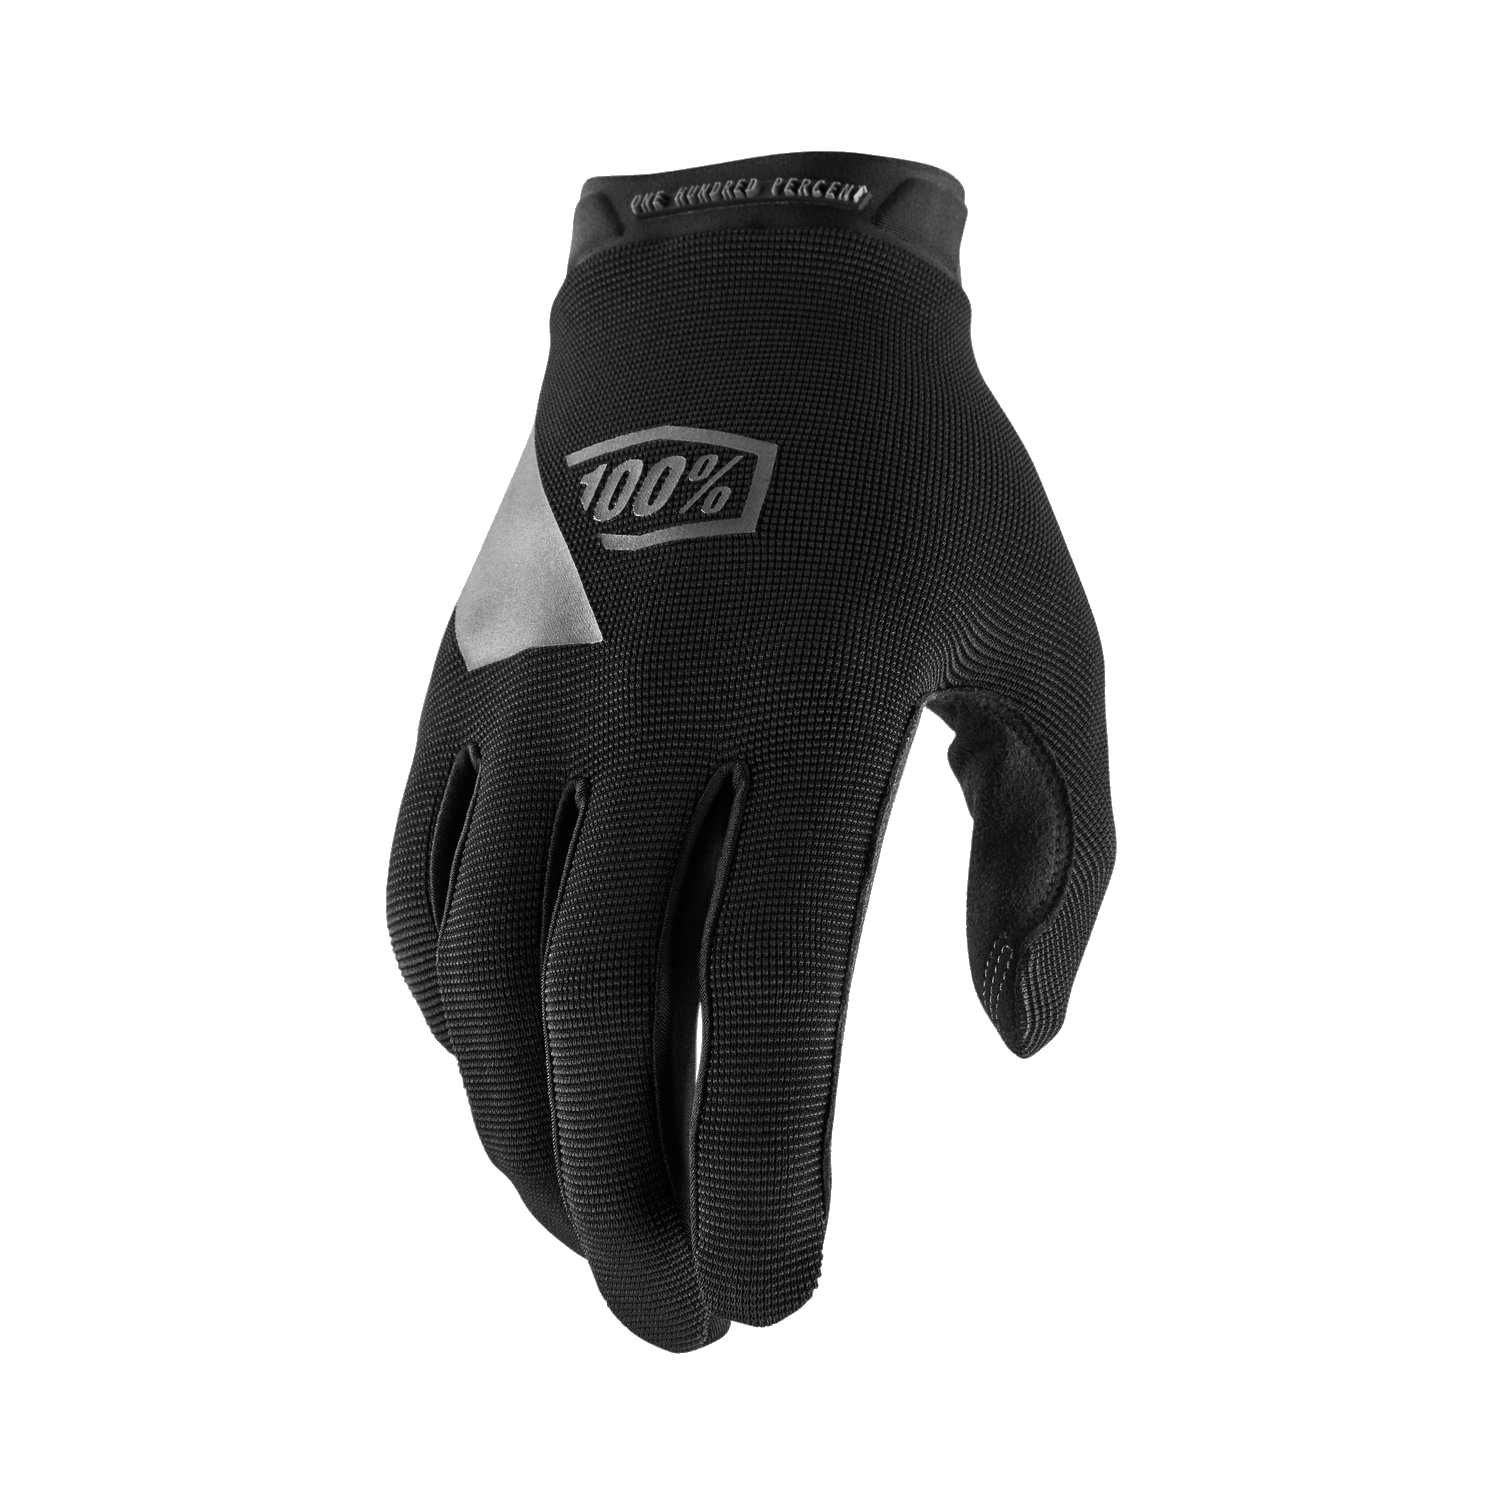 100% Ride Camp Gloves / Women's-1